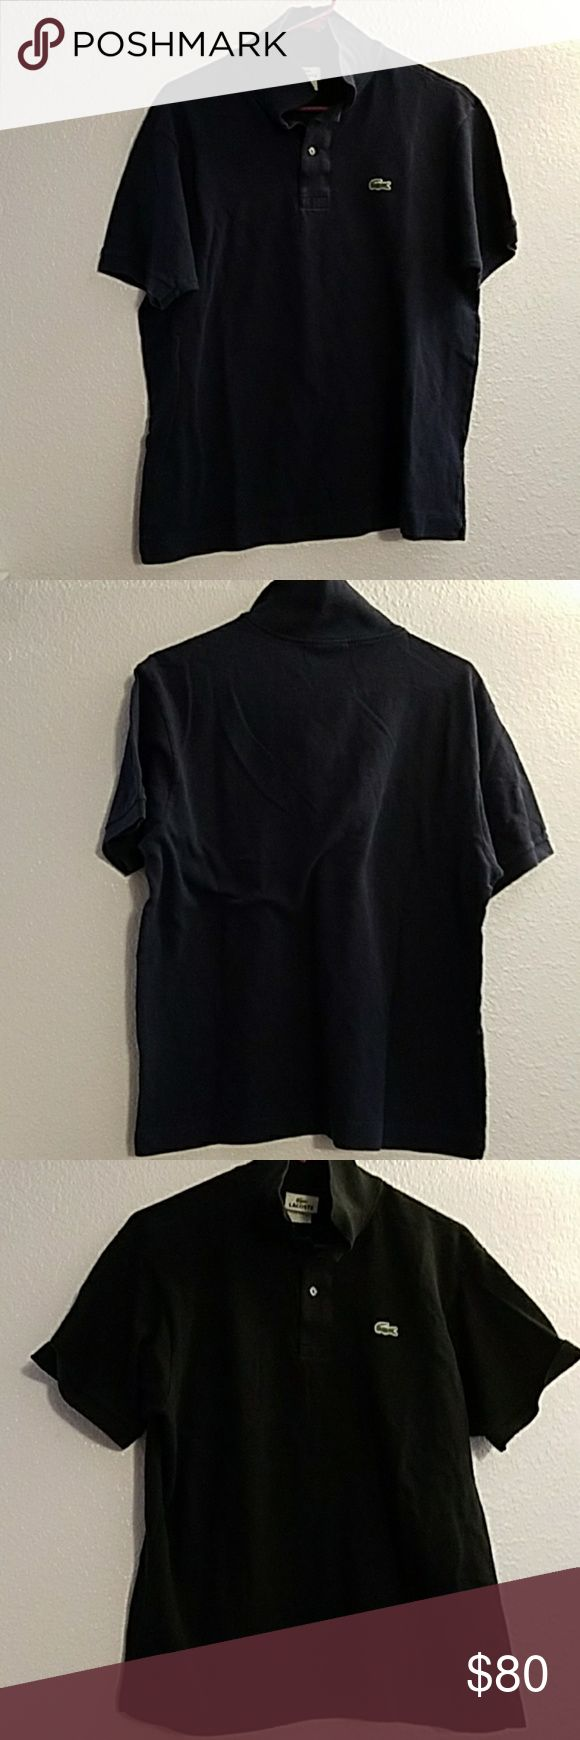 Lacoste Polo Shirts (Set of 2) Good Condition, Set of Navy and Black Lacoste Shirts Polos